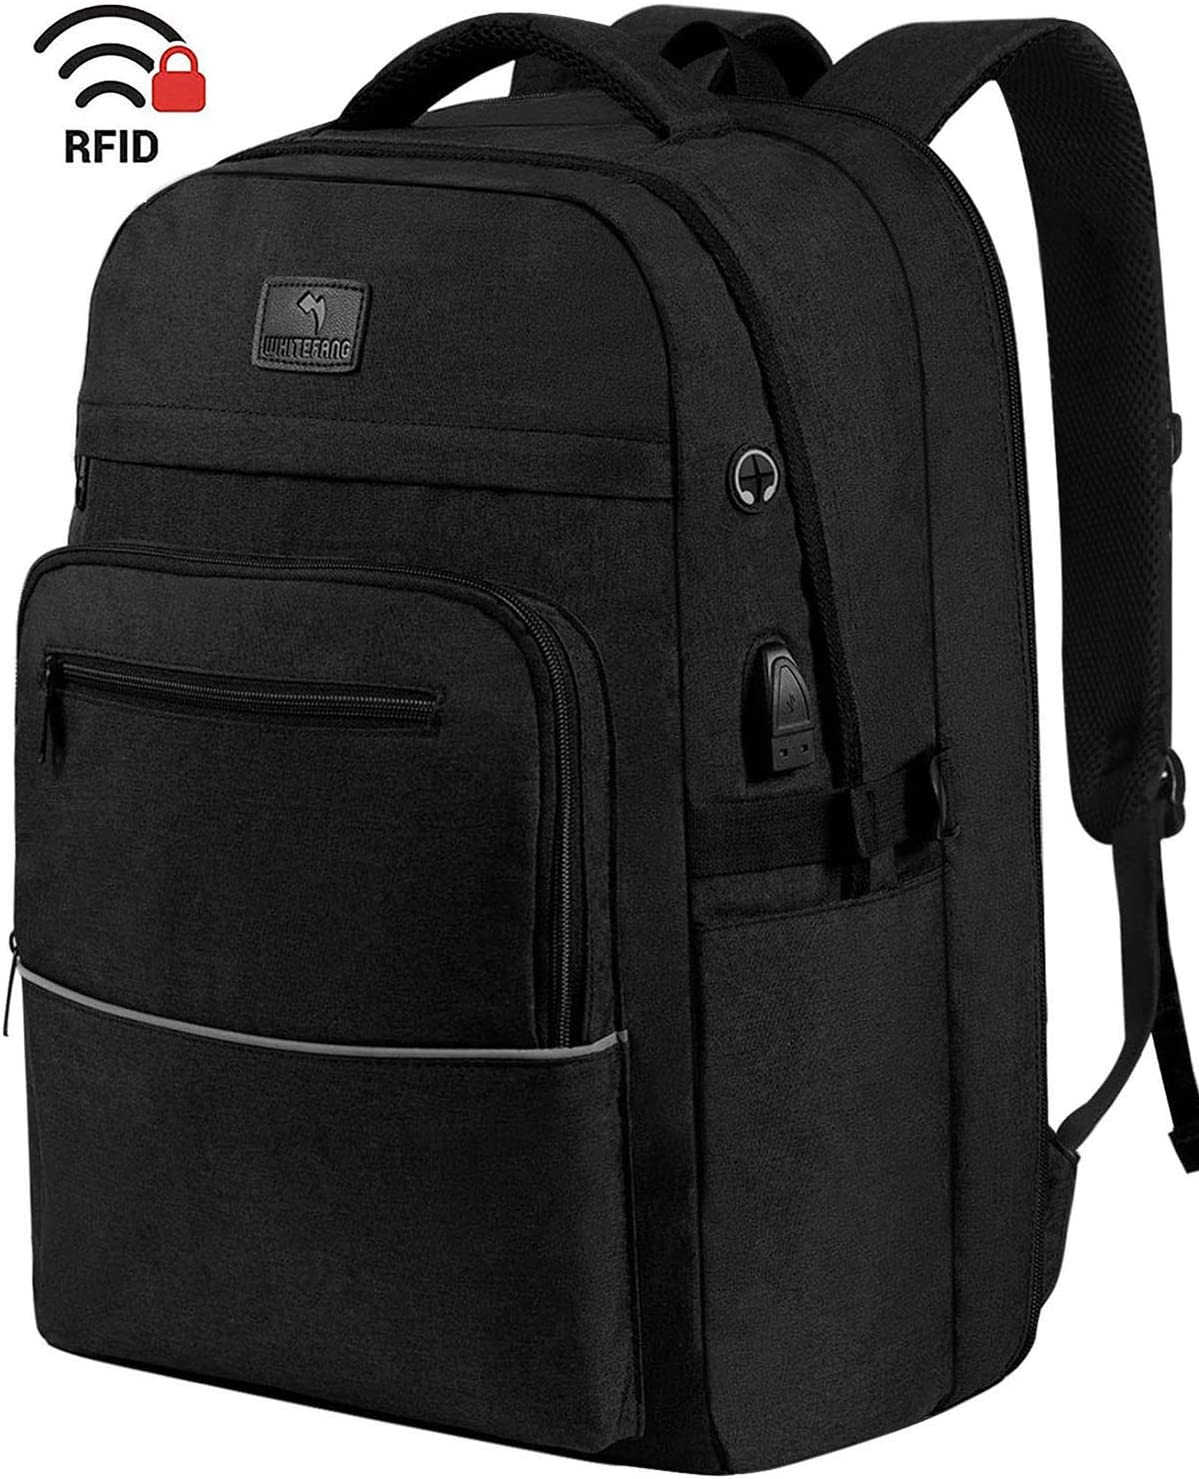 Laptop Backpack,WhiteFang 17.3 Inch Extra Large TSA Friendly Business Travel Laptop Backpack with USB Charging Port, RFID Pockets Water Resistant Big School Backpack for Women & Men